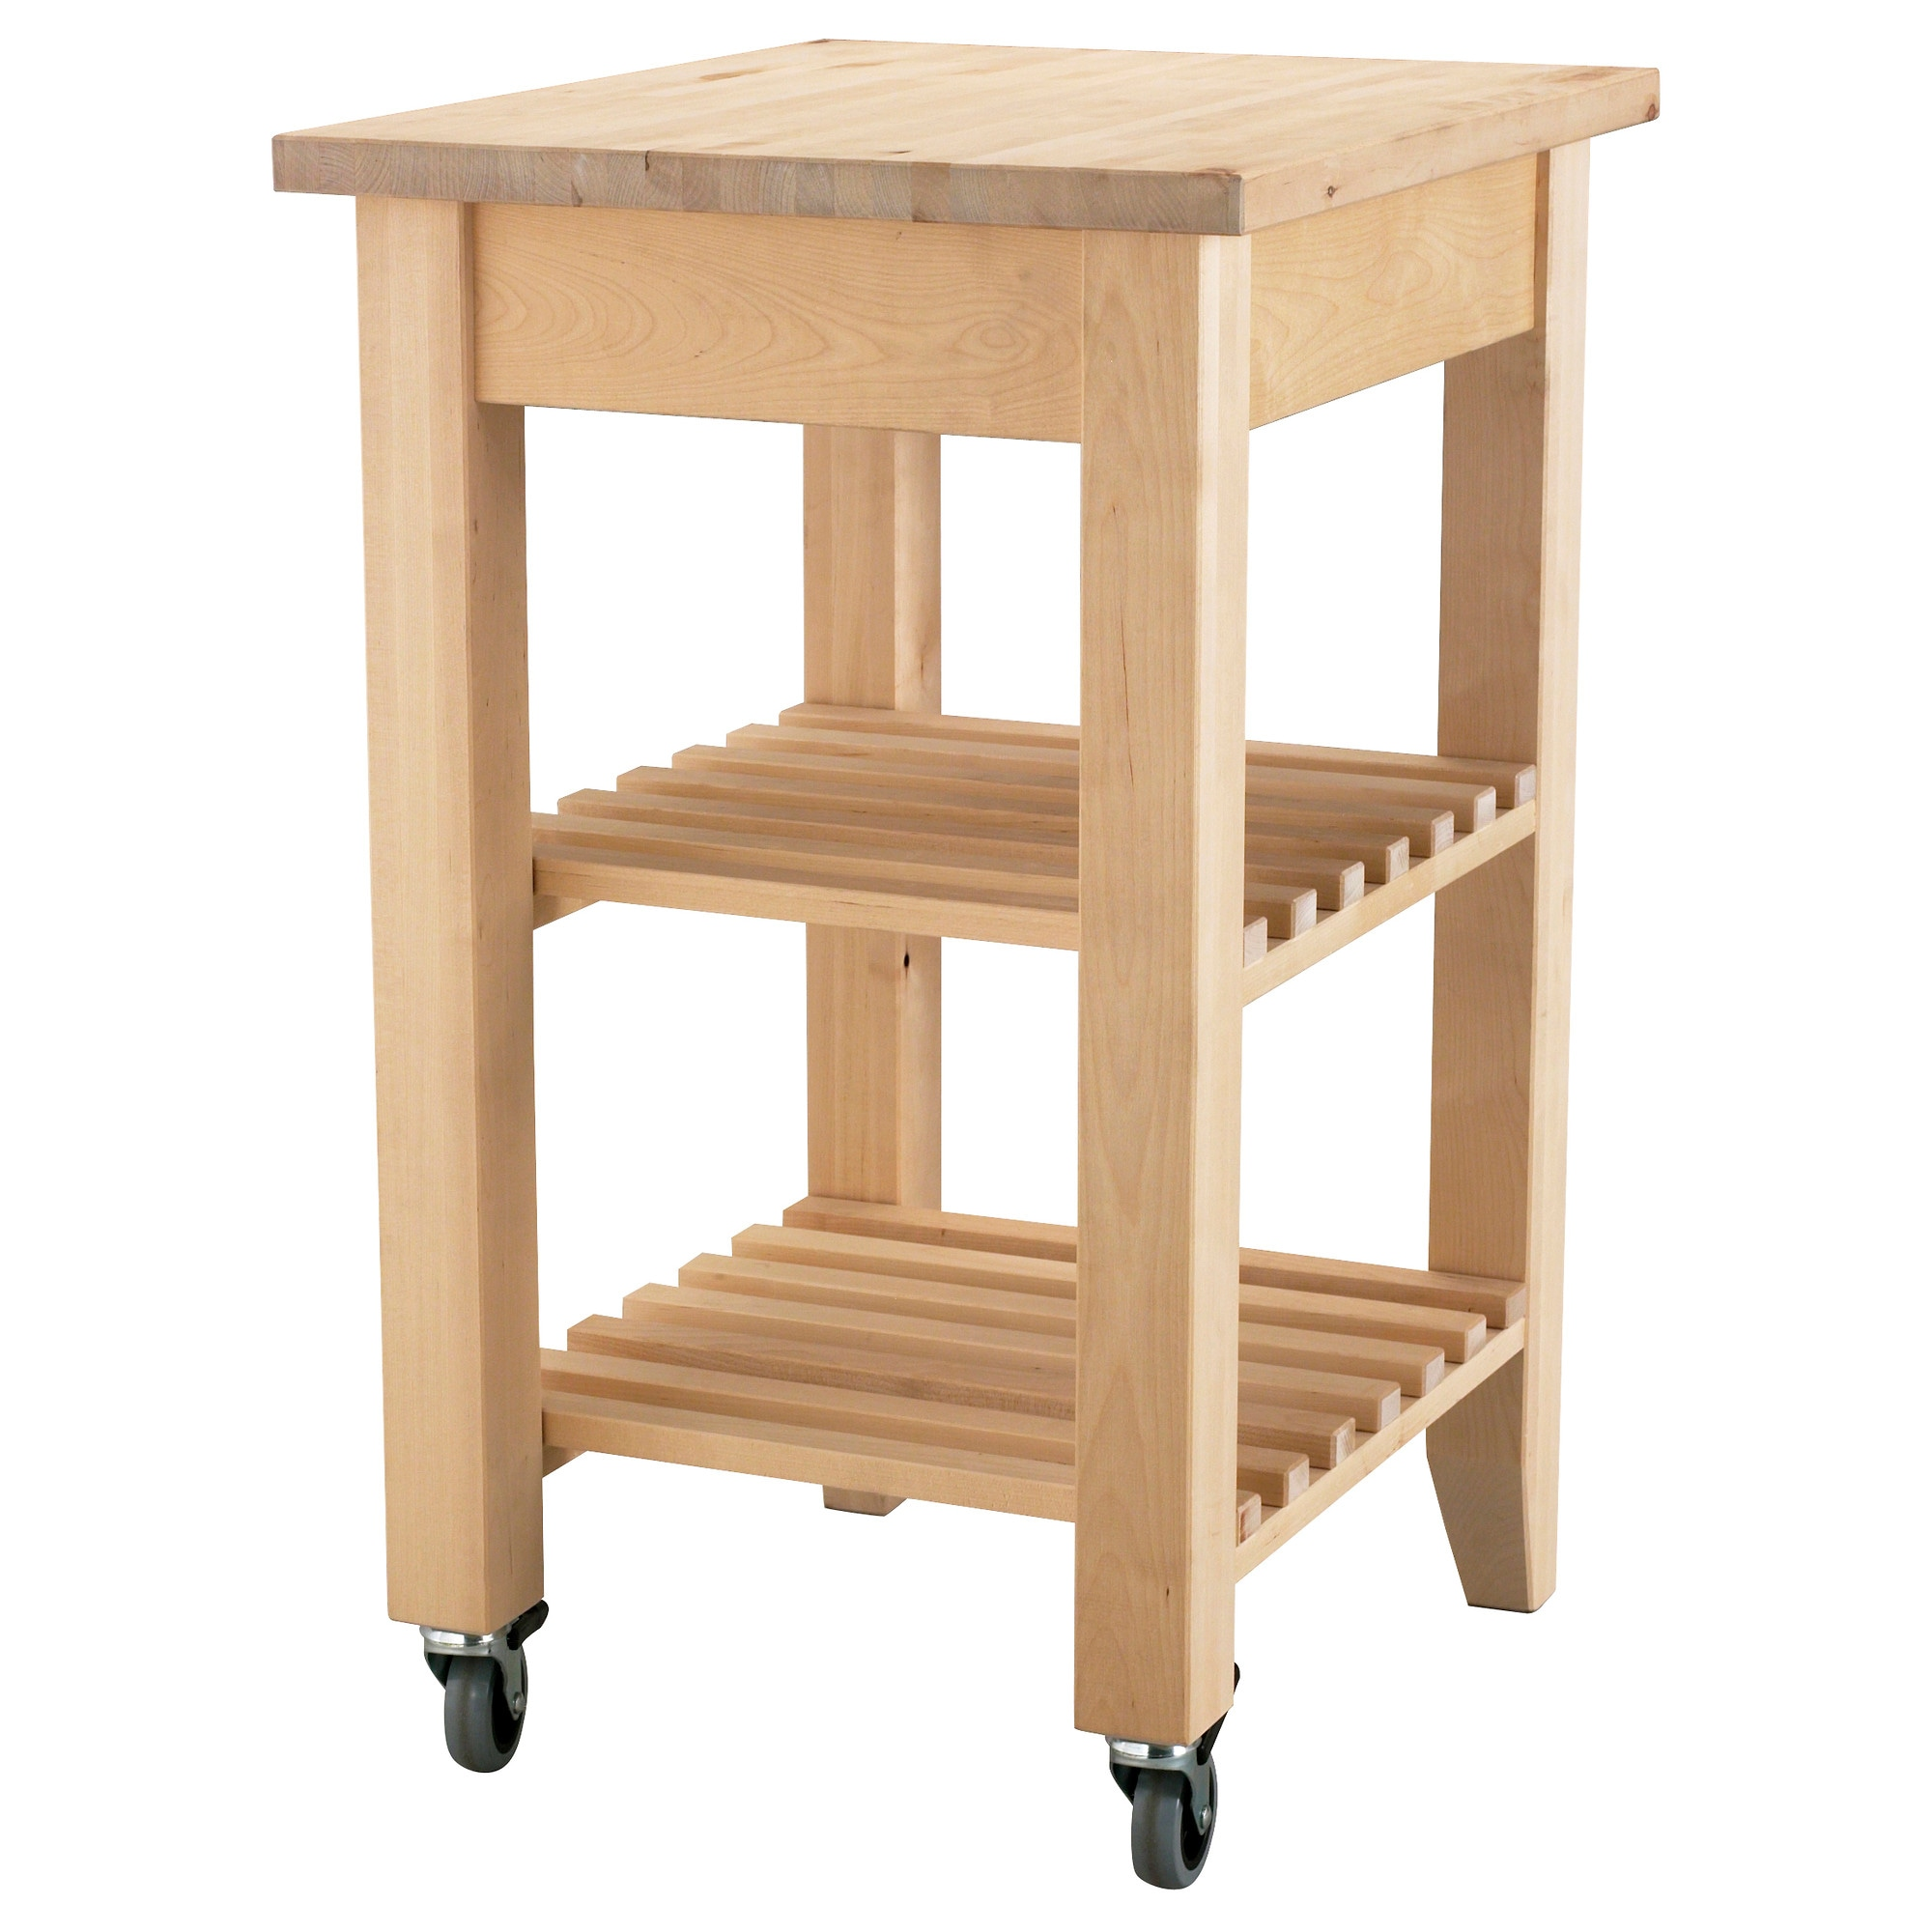 Beau IKEA BEKVÄM Kitchen Cart